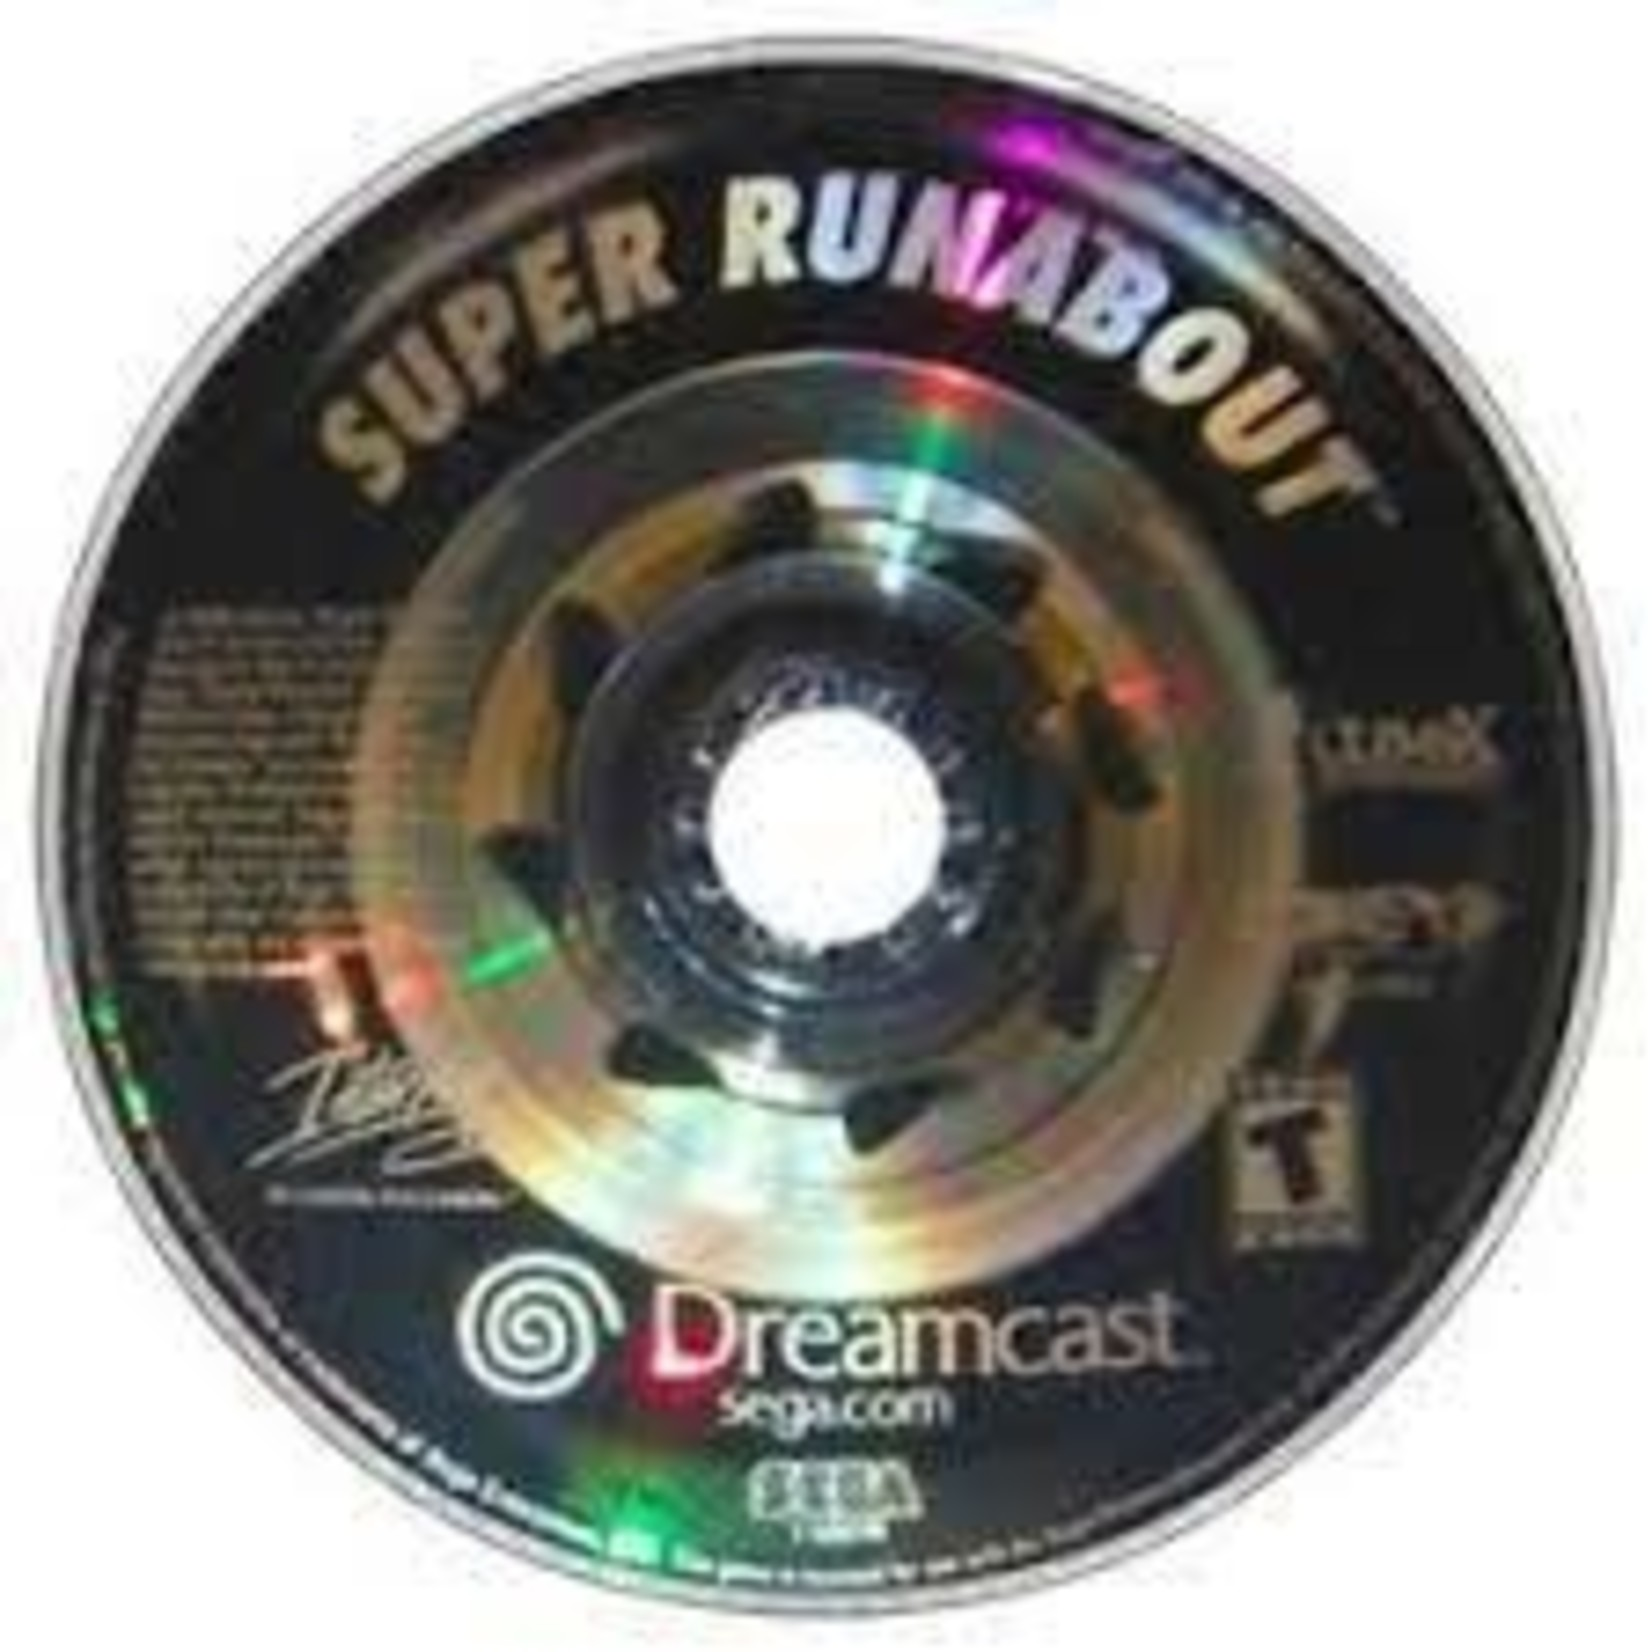 dcu-Super Runabout (disc only)